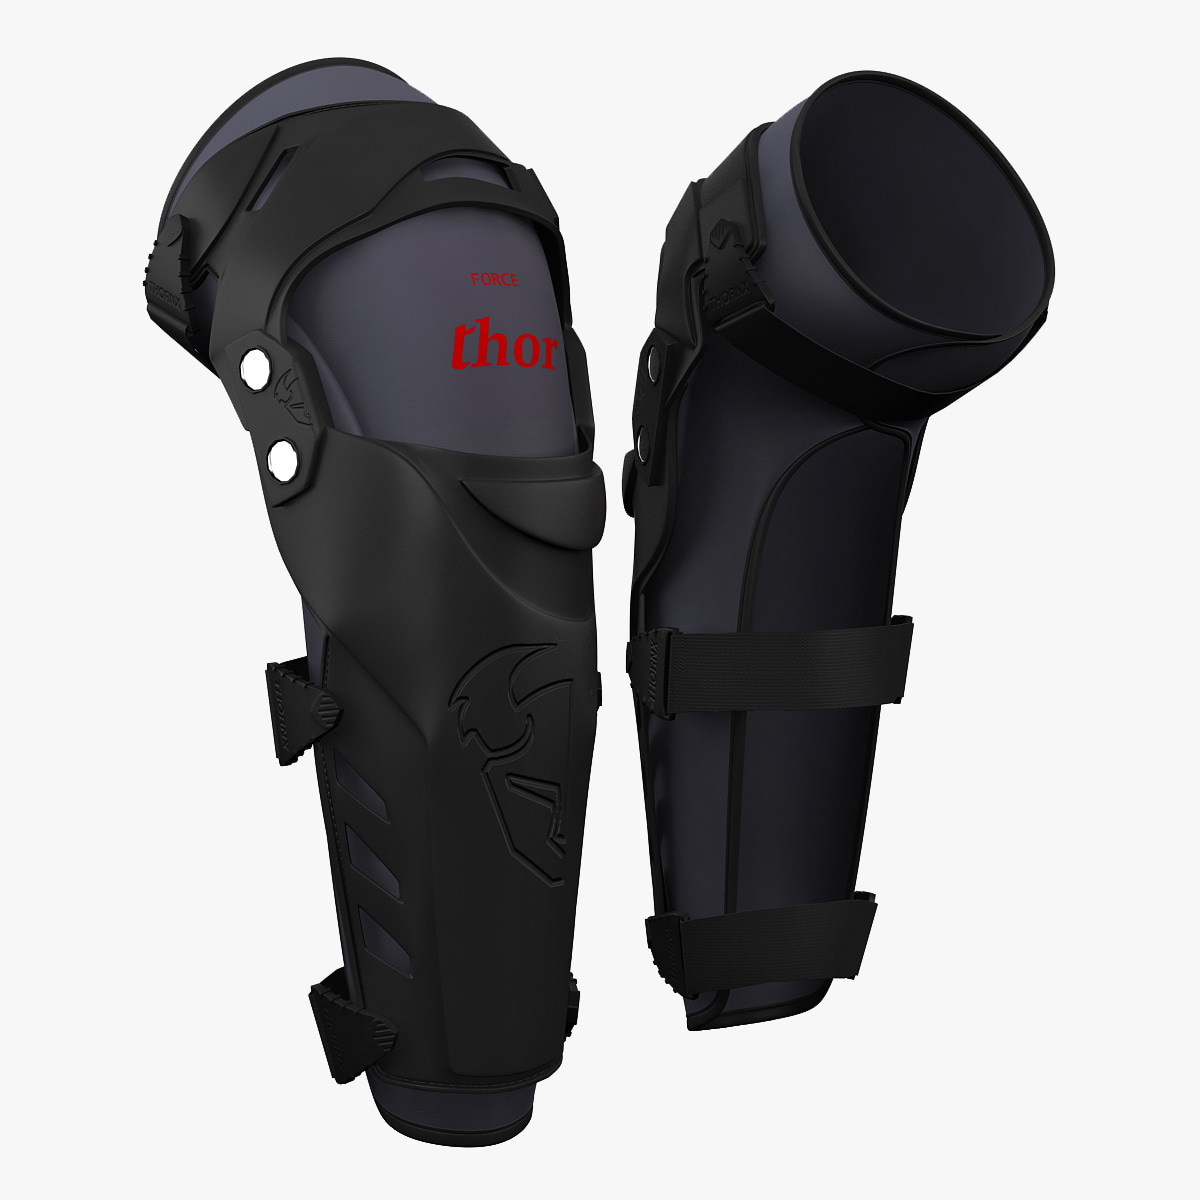 Motocross_Knee_Protection_Thor_Force_Knee_Guards_000.jpg